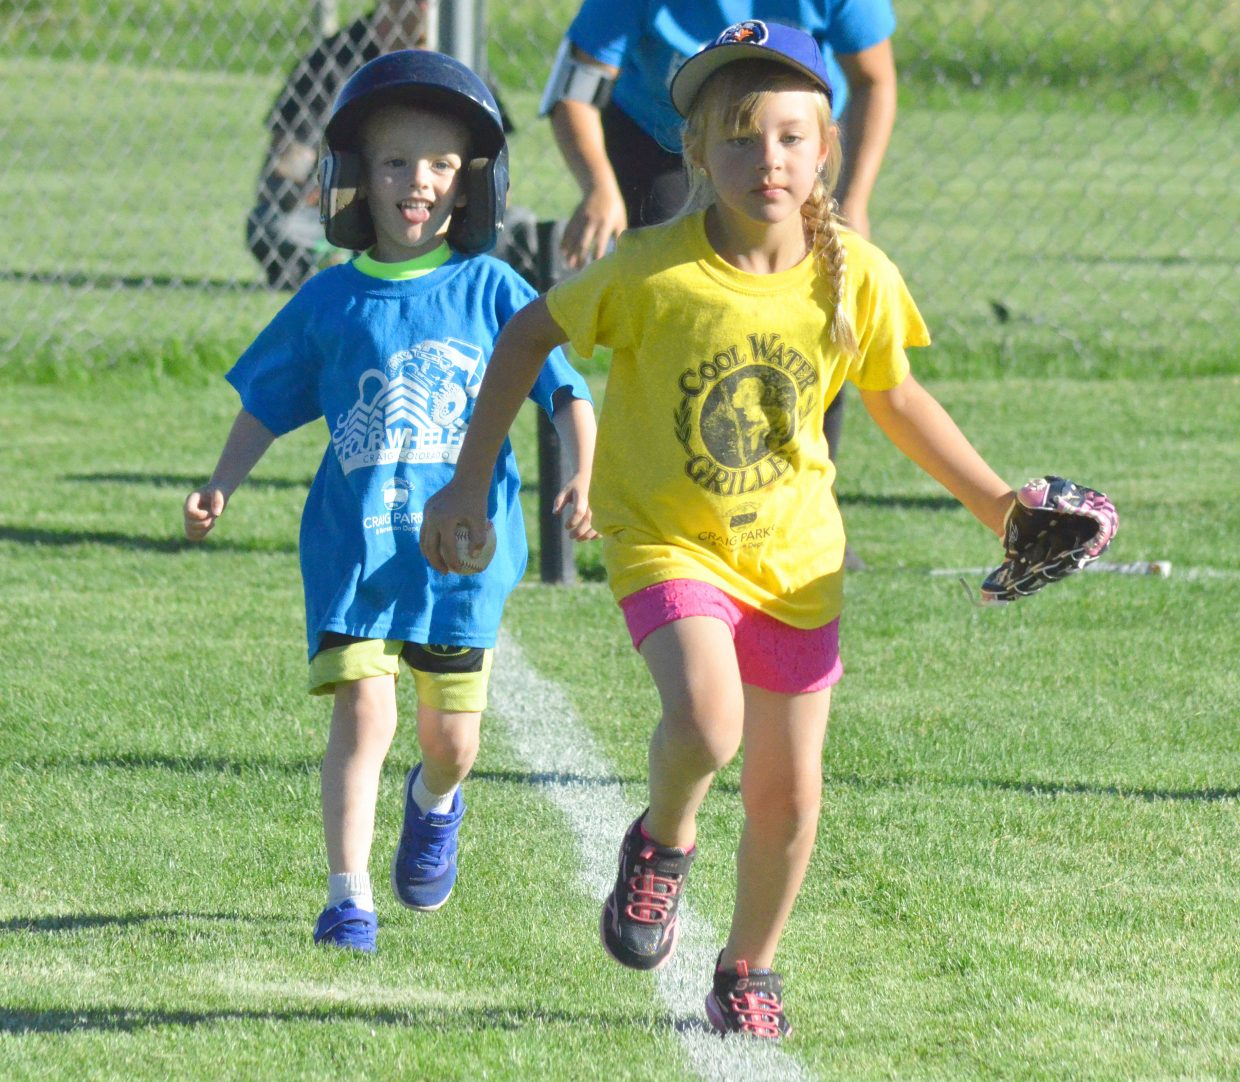 Baserunner Kael Higgins, of CNCC Four-Wheelers and fielder Kadynce Hampton, of Cool Water Grille, speed toward first base during a Thursday t-ball team at Woodbury Sports Complex.